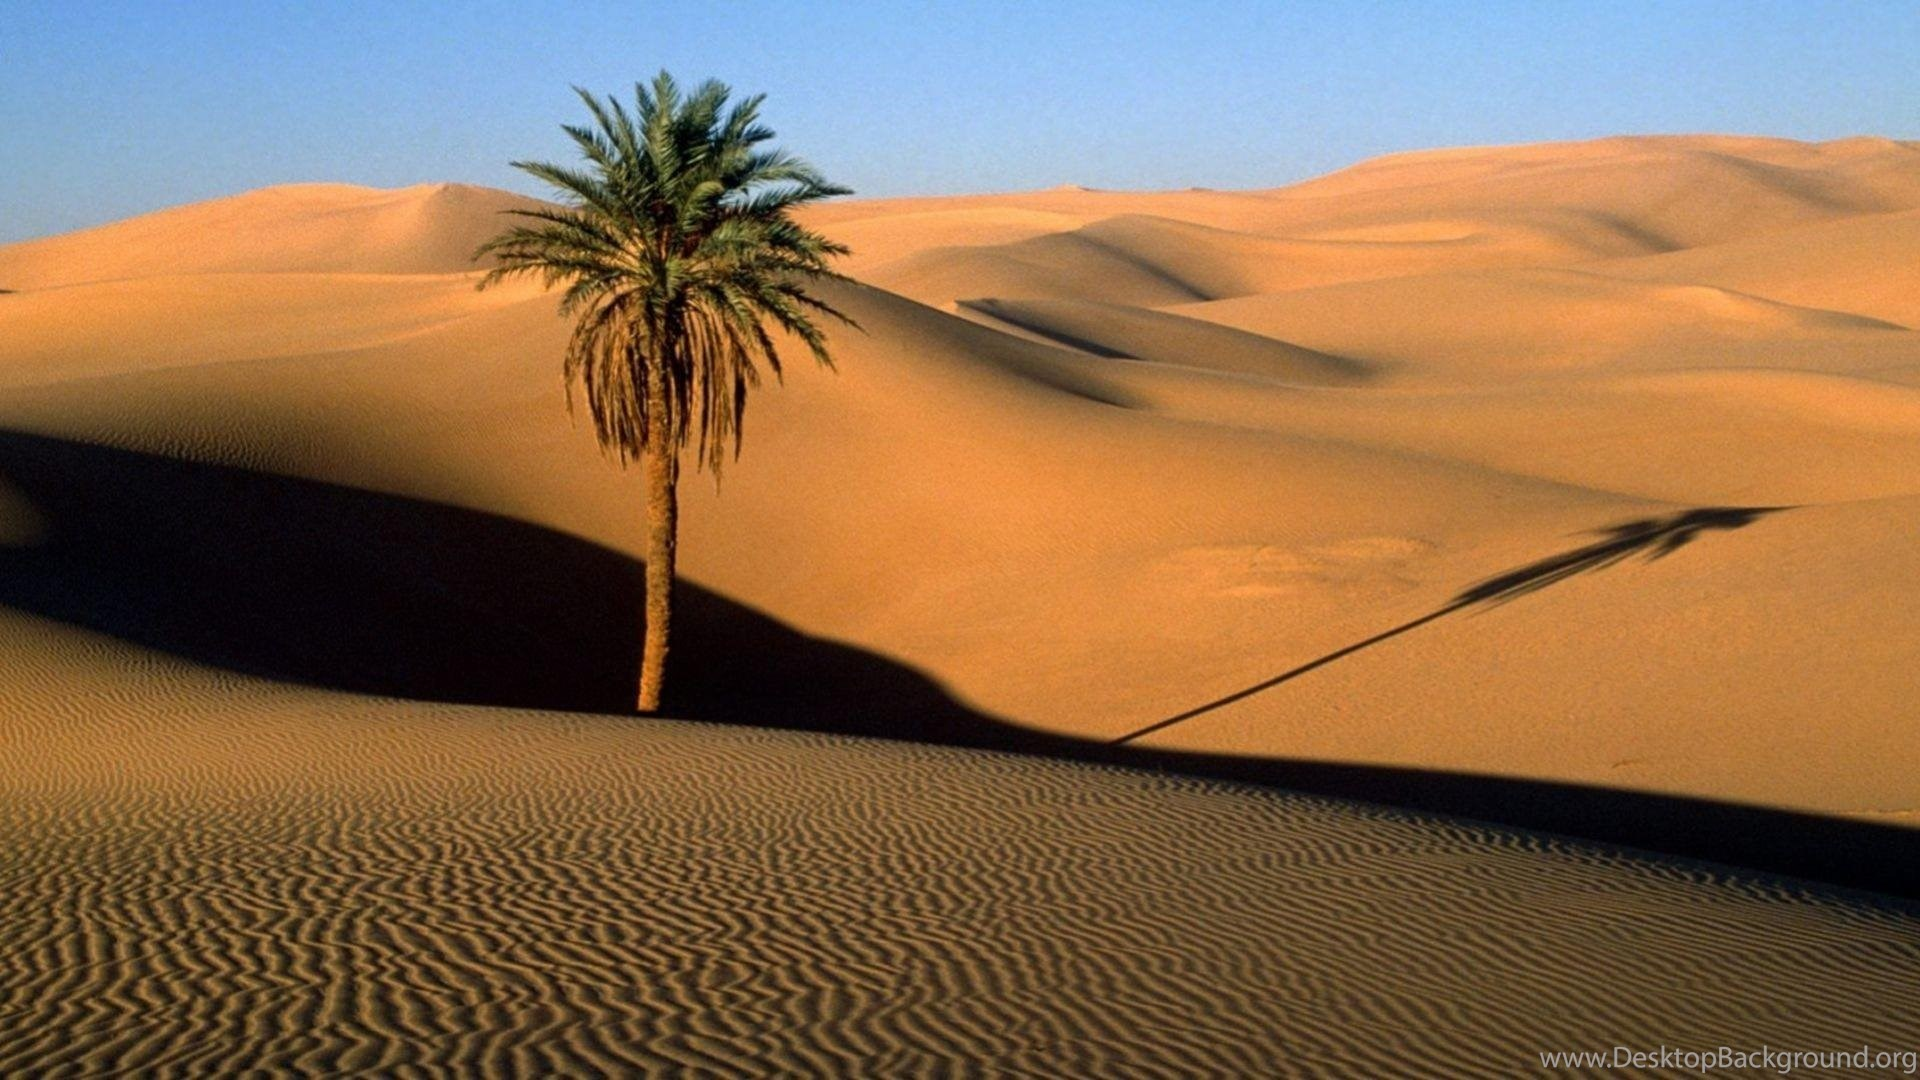 Desert Palm Trees Dunes Sahara Wallpapers Desktop Background